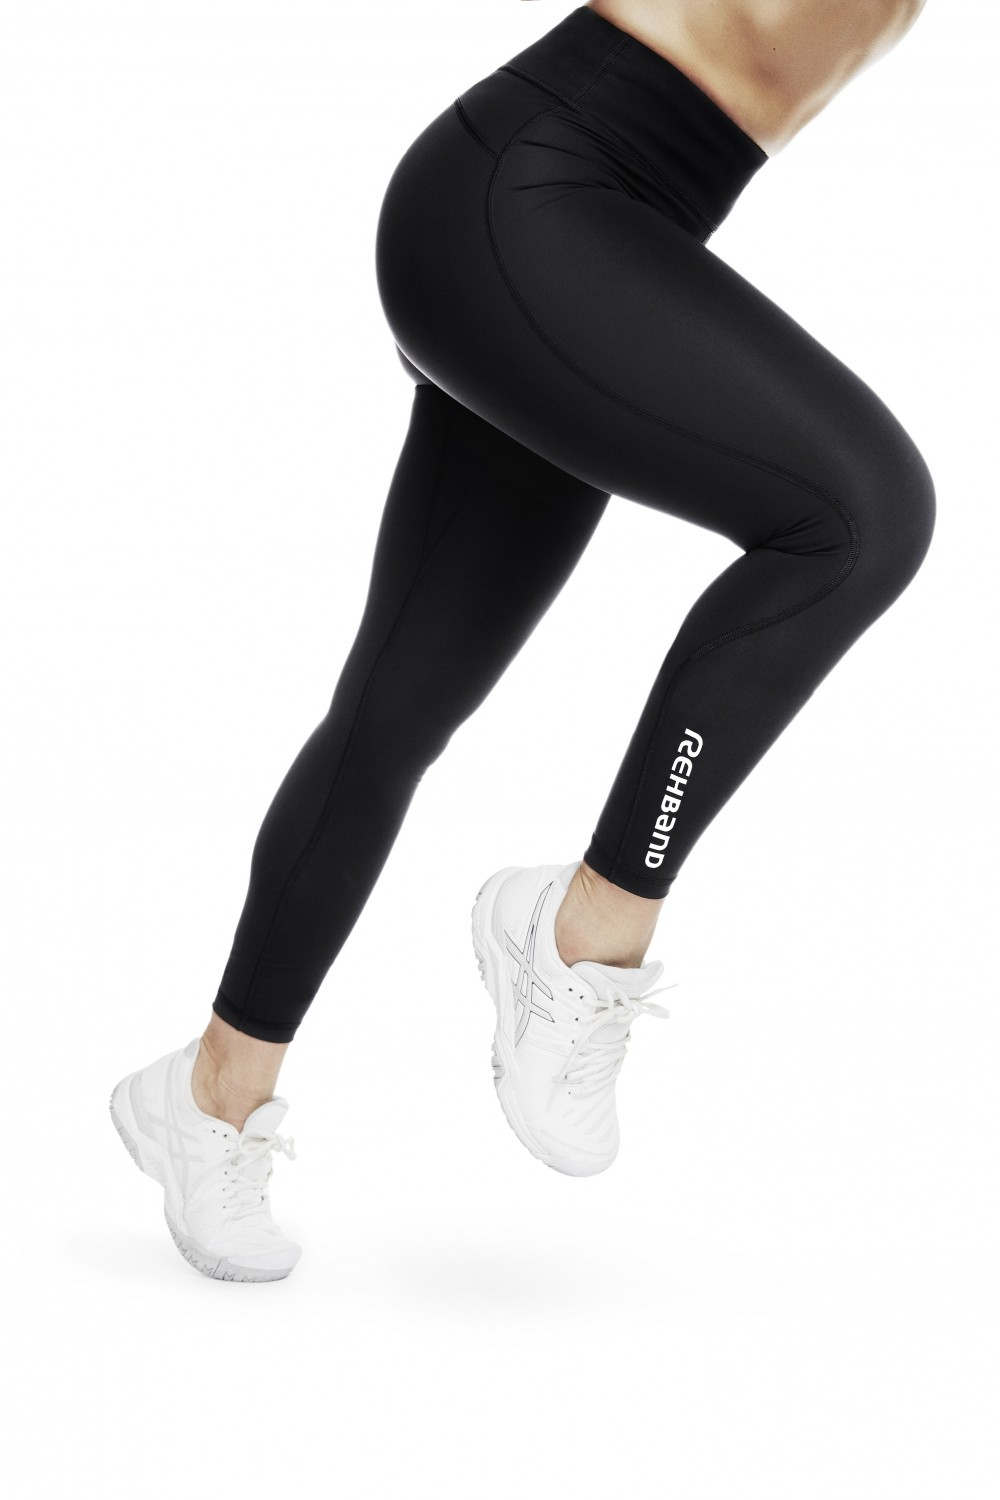 UD Runner's Knee/ITBS Tights - Women